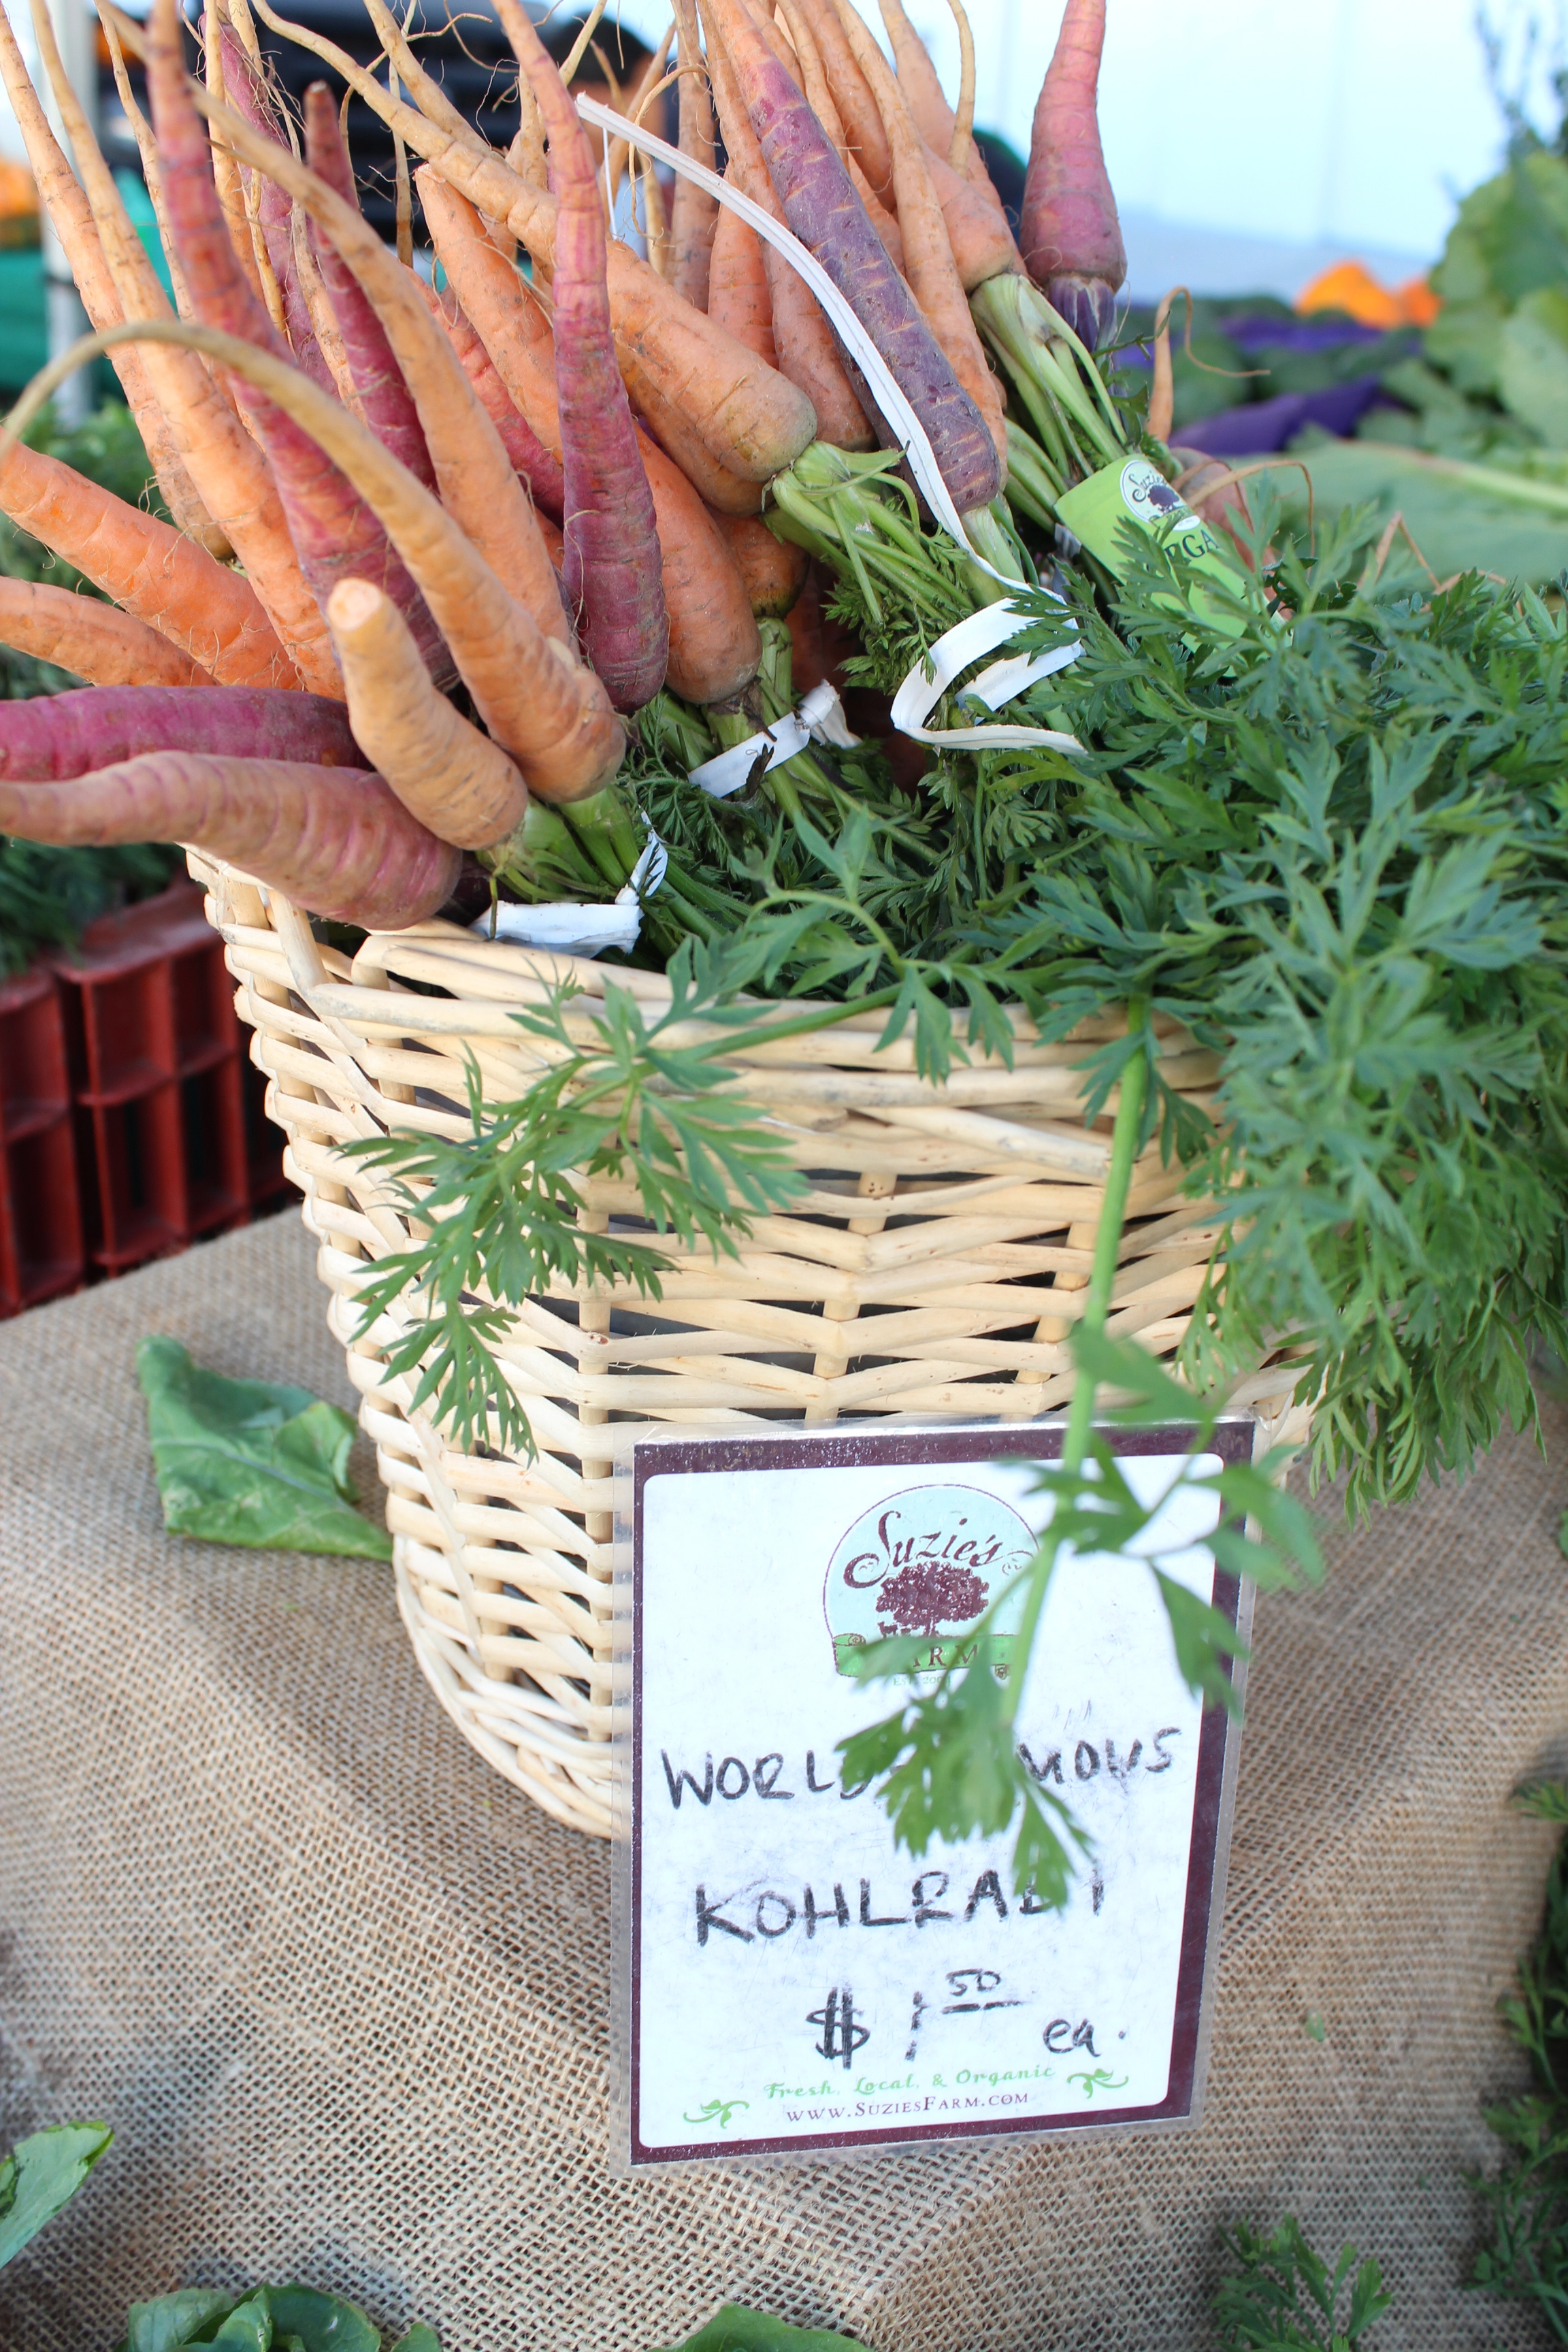 Suzies farms, san diego, organic sprouts, organic produce, organic vegetables, organic herbs, herbs, vegetables, farmers market